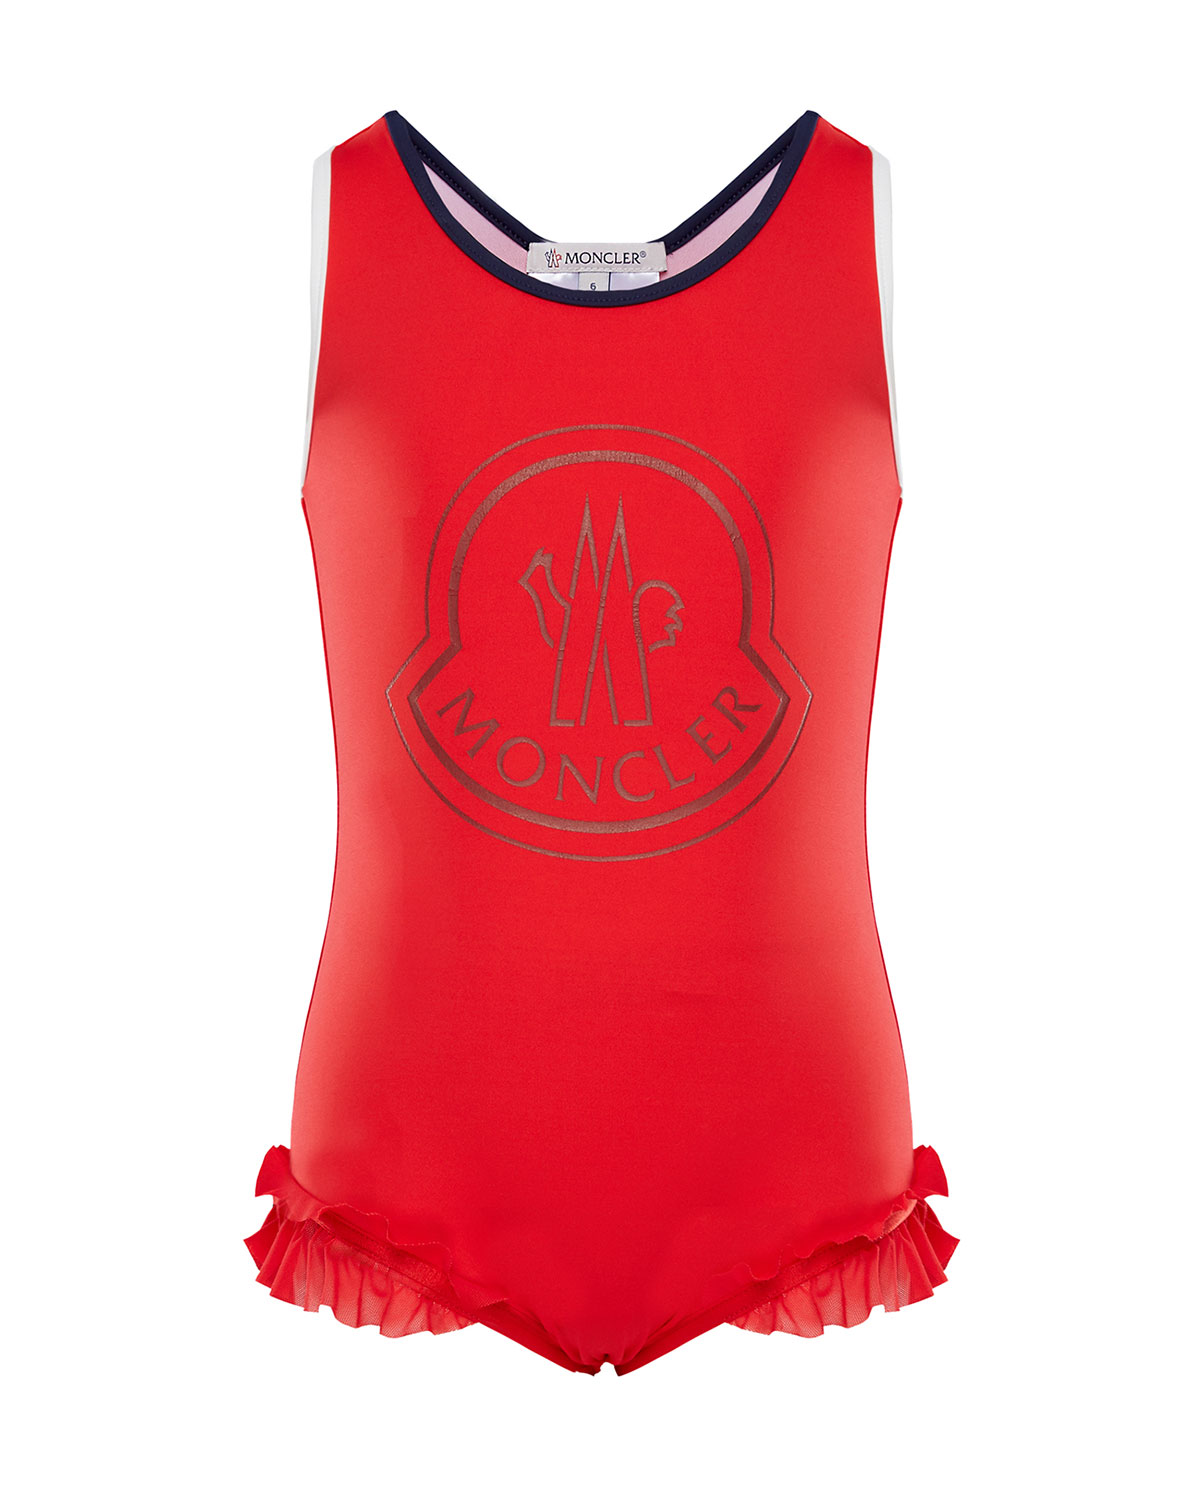 Moncler One-Piece Ruffle-Trim Swimsuit, Size 8-14